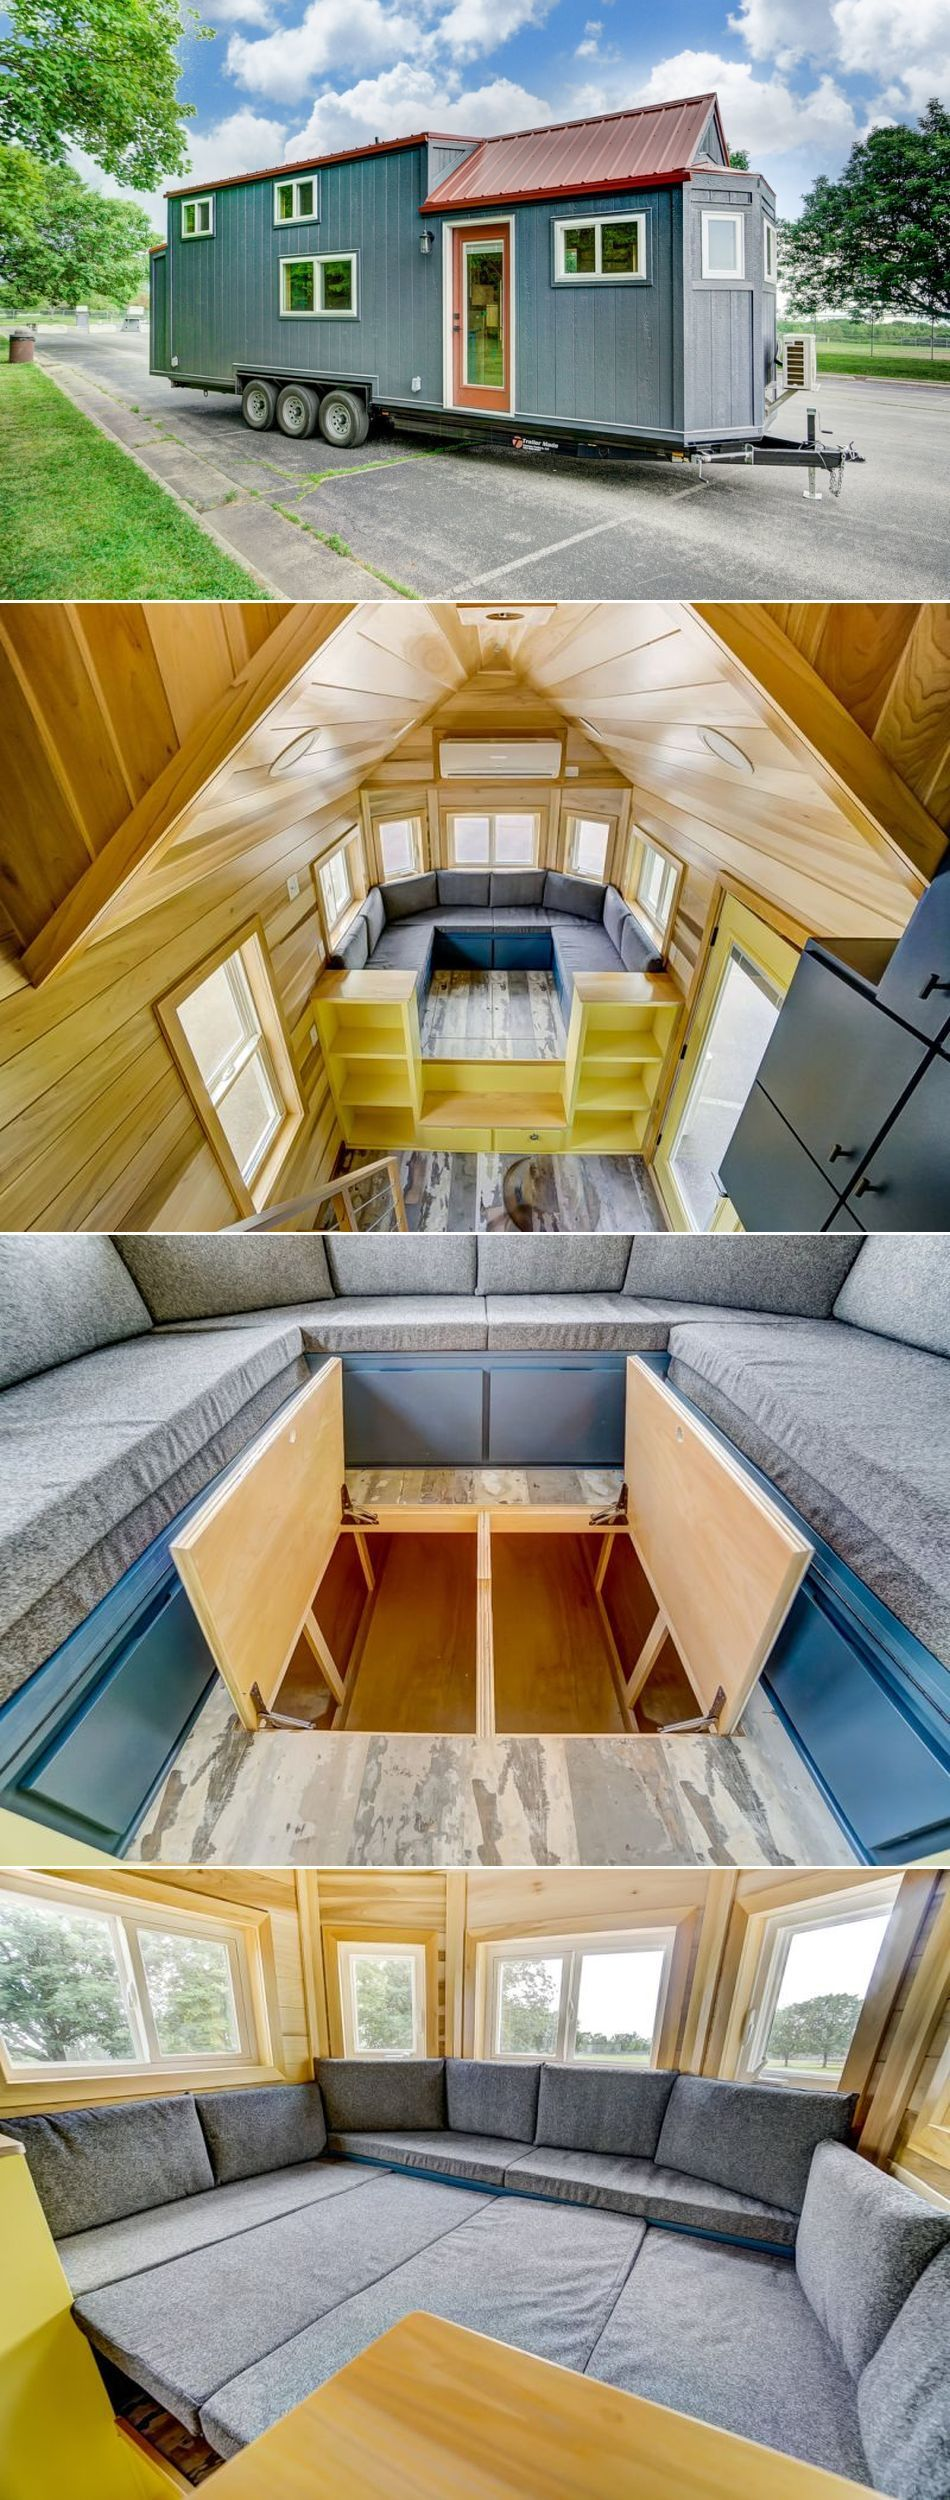 Modern Tiny Living's Serenity Tiny House Features Office with Back Door